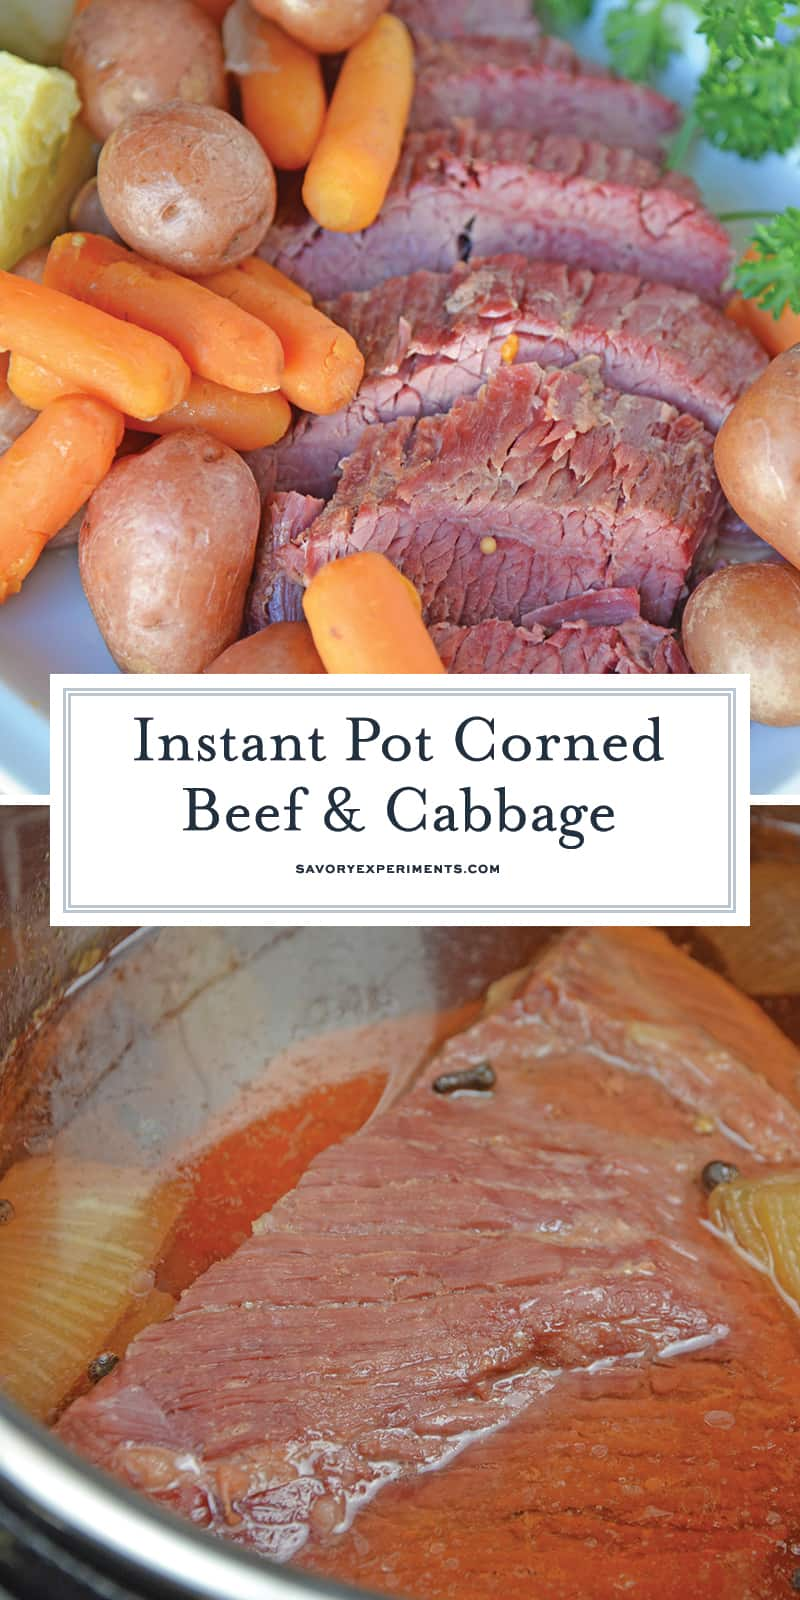 Instant Pot Corned Beef and Cabbage is the best way to prepare brisket. Fork tender meat made with a delicious spice blend and root vegetables. #cornedbeefandcabbage #instantpotcornedbeef #pressurecookercornedbeef www.savoryexperiments.com